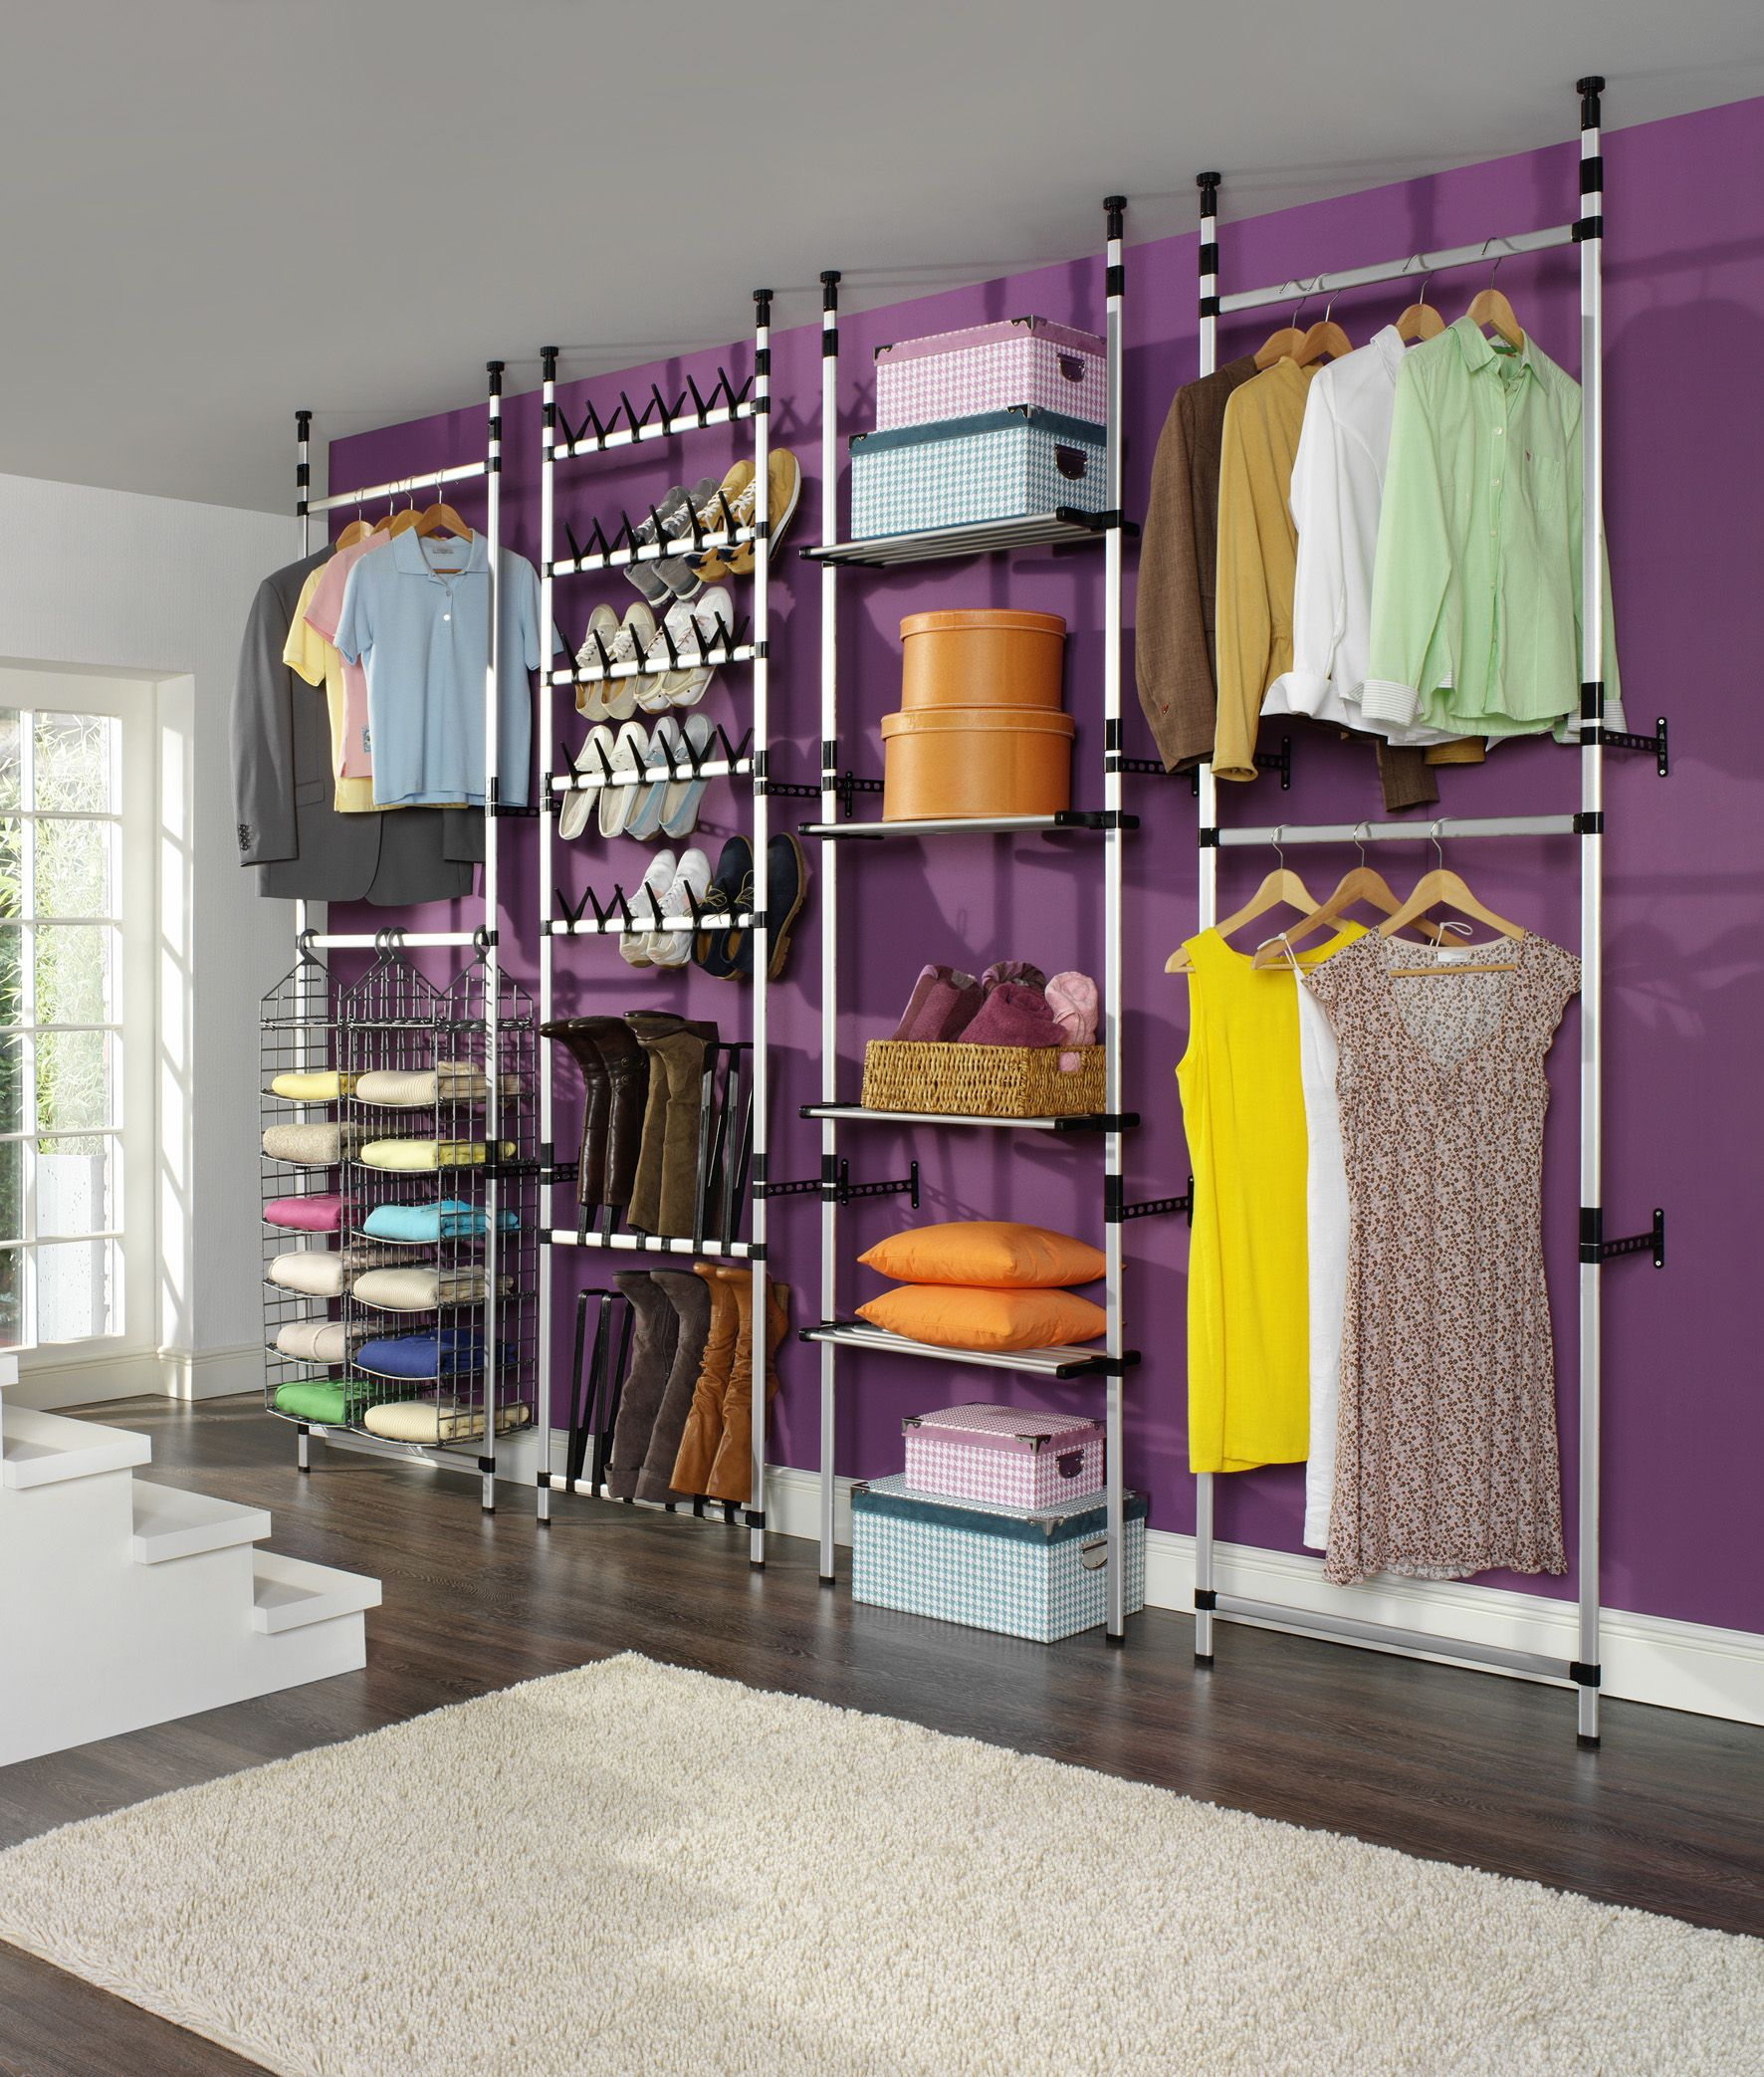 An Innovative And Versatile Storage Solution For Clothes, Shoes, Hats And  More